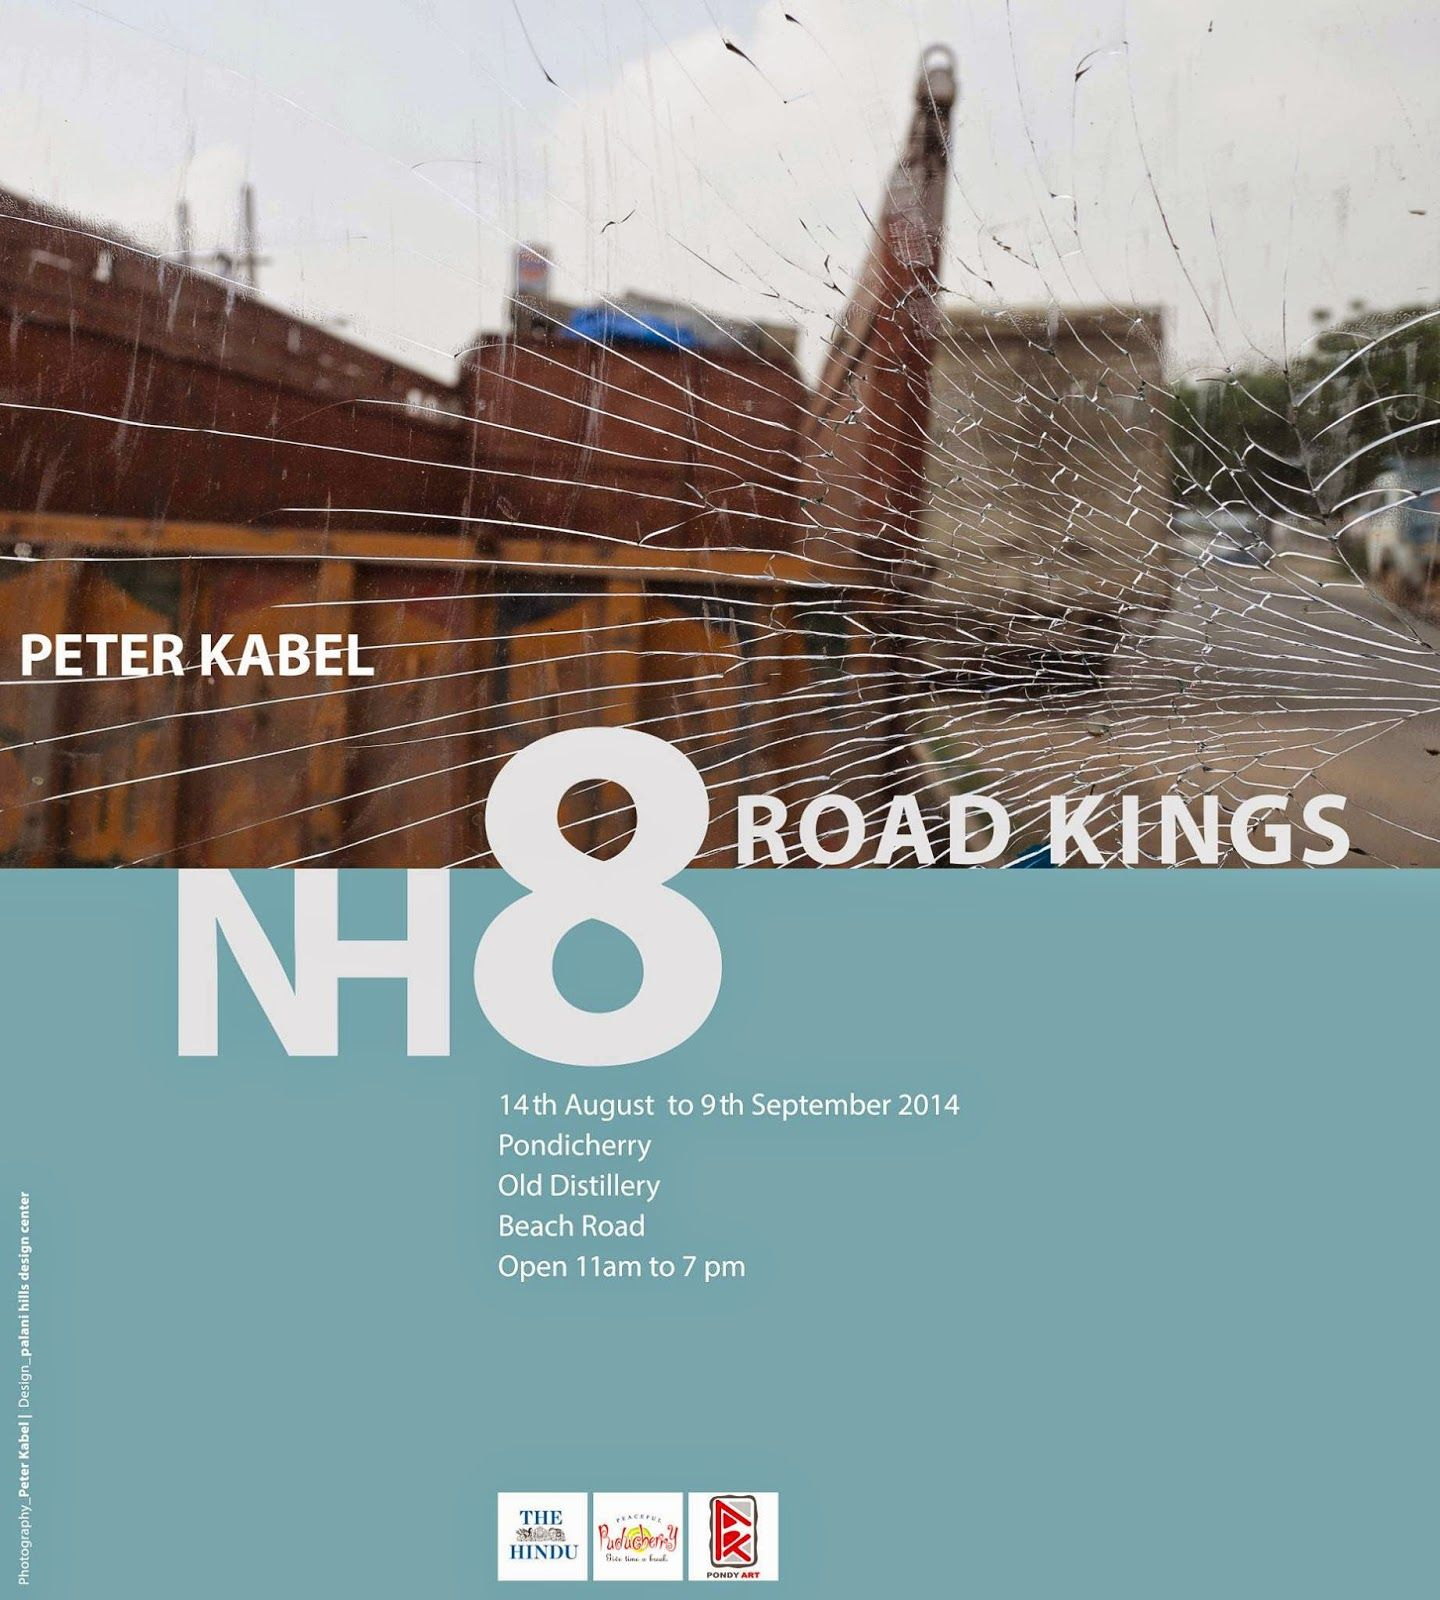 Blog Nh8 Road Kings By Peter Kabel Opening Thursday 14 Road